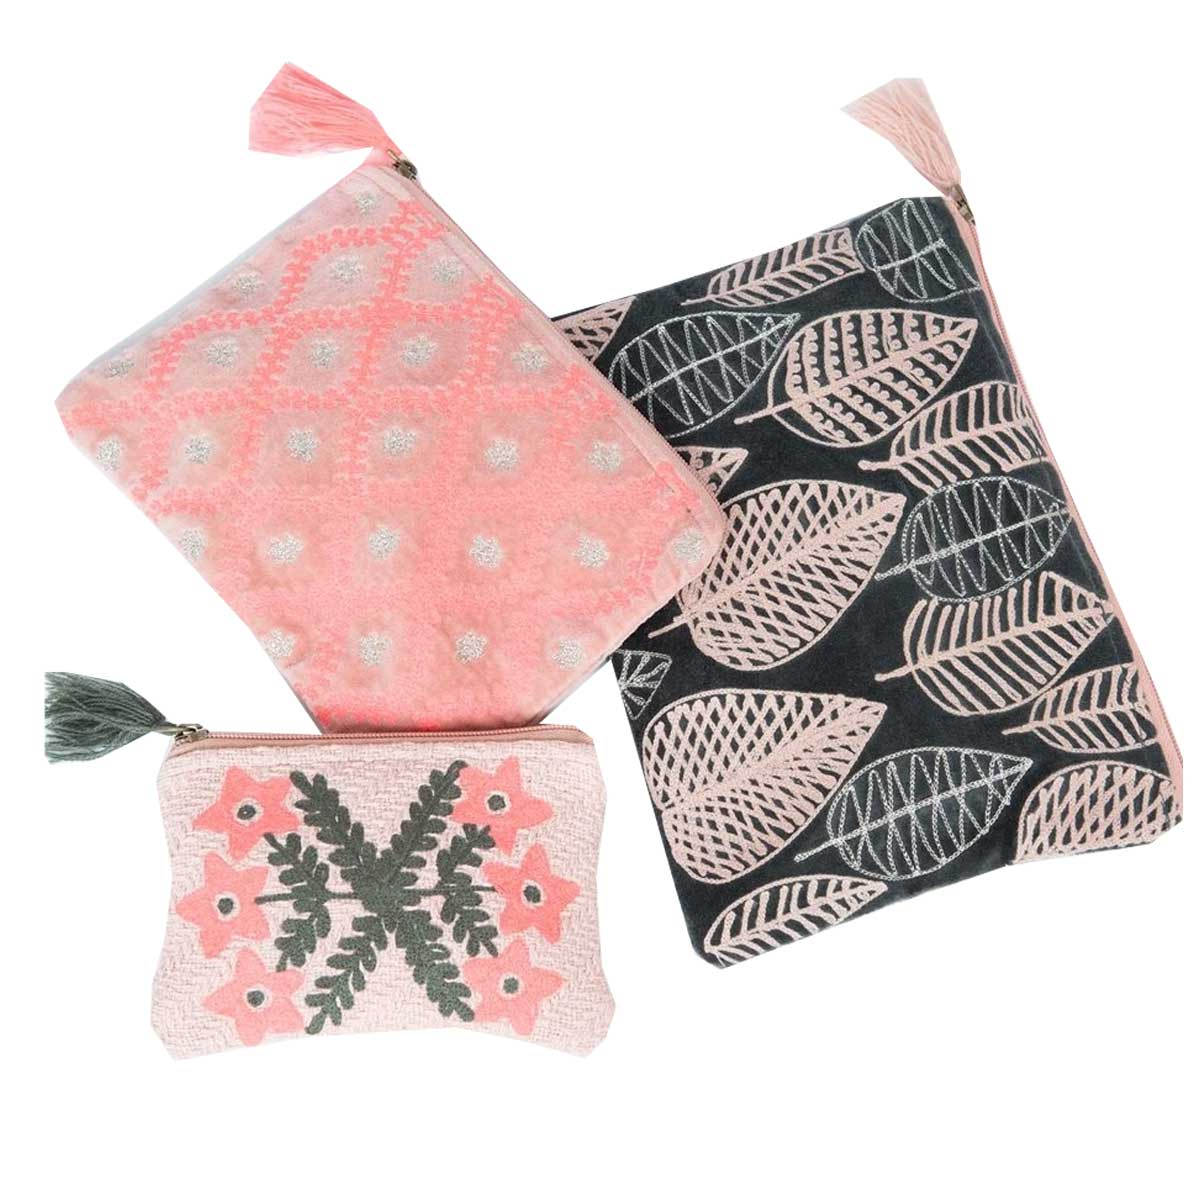 Ivy Jane Jasper & Jane Leaves Pouch Set